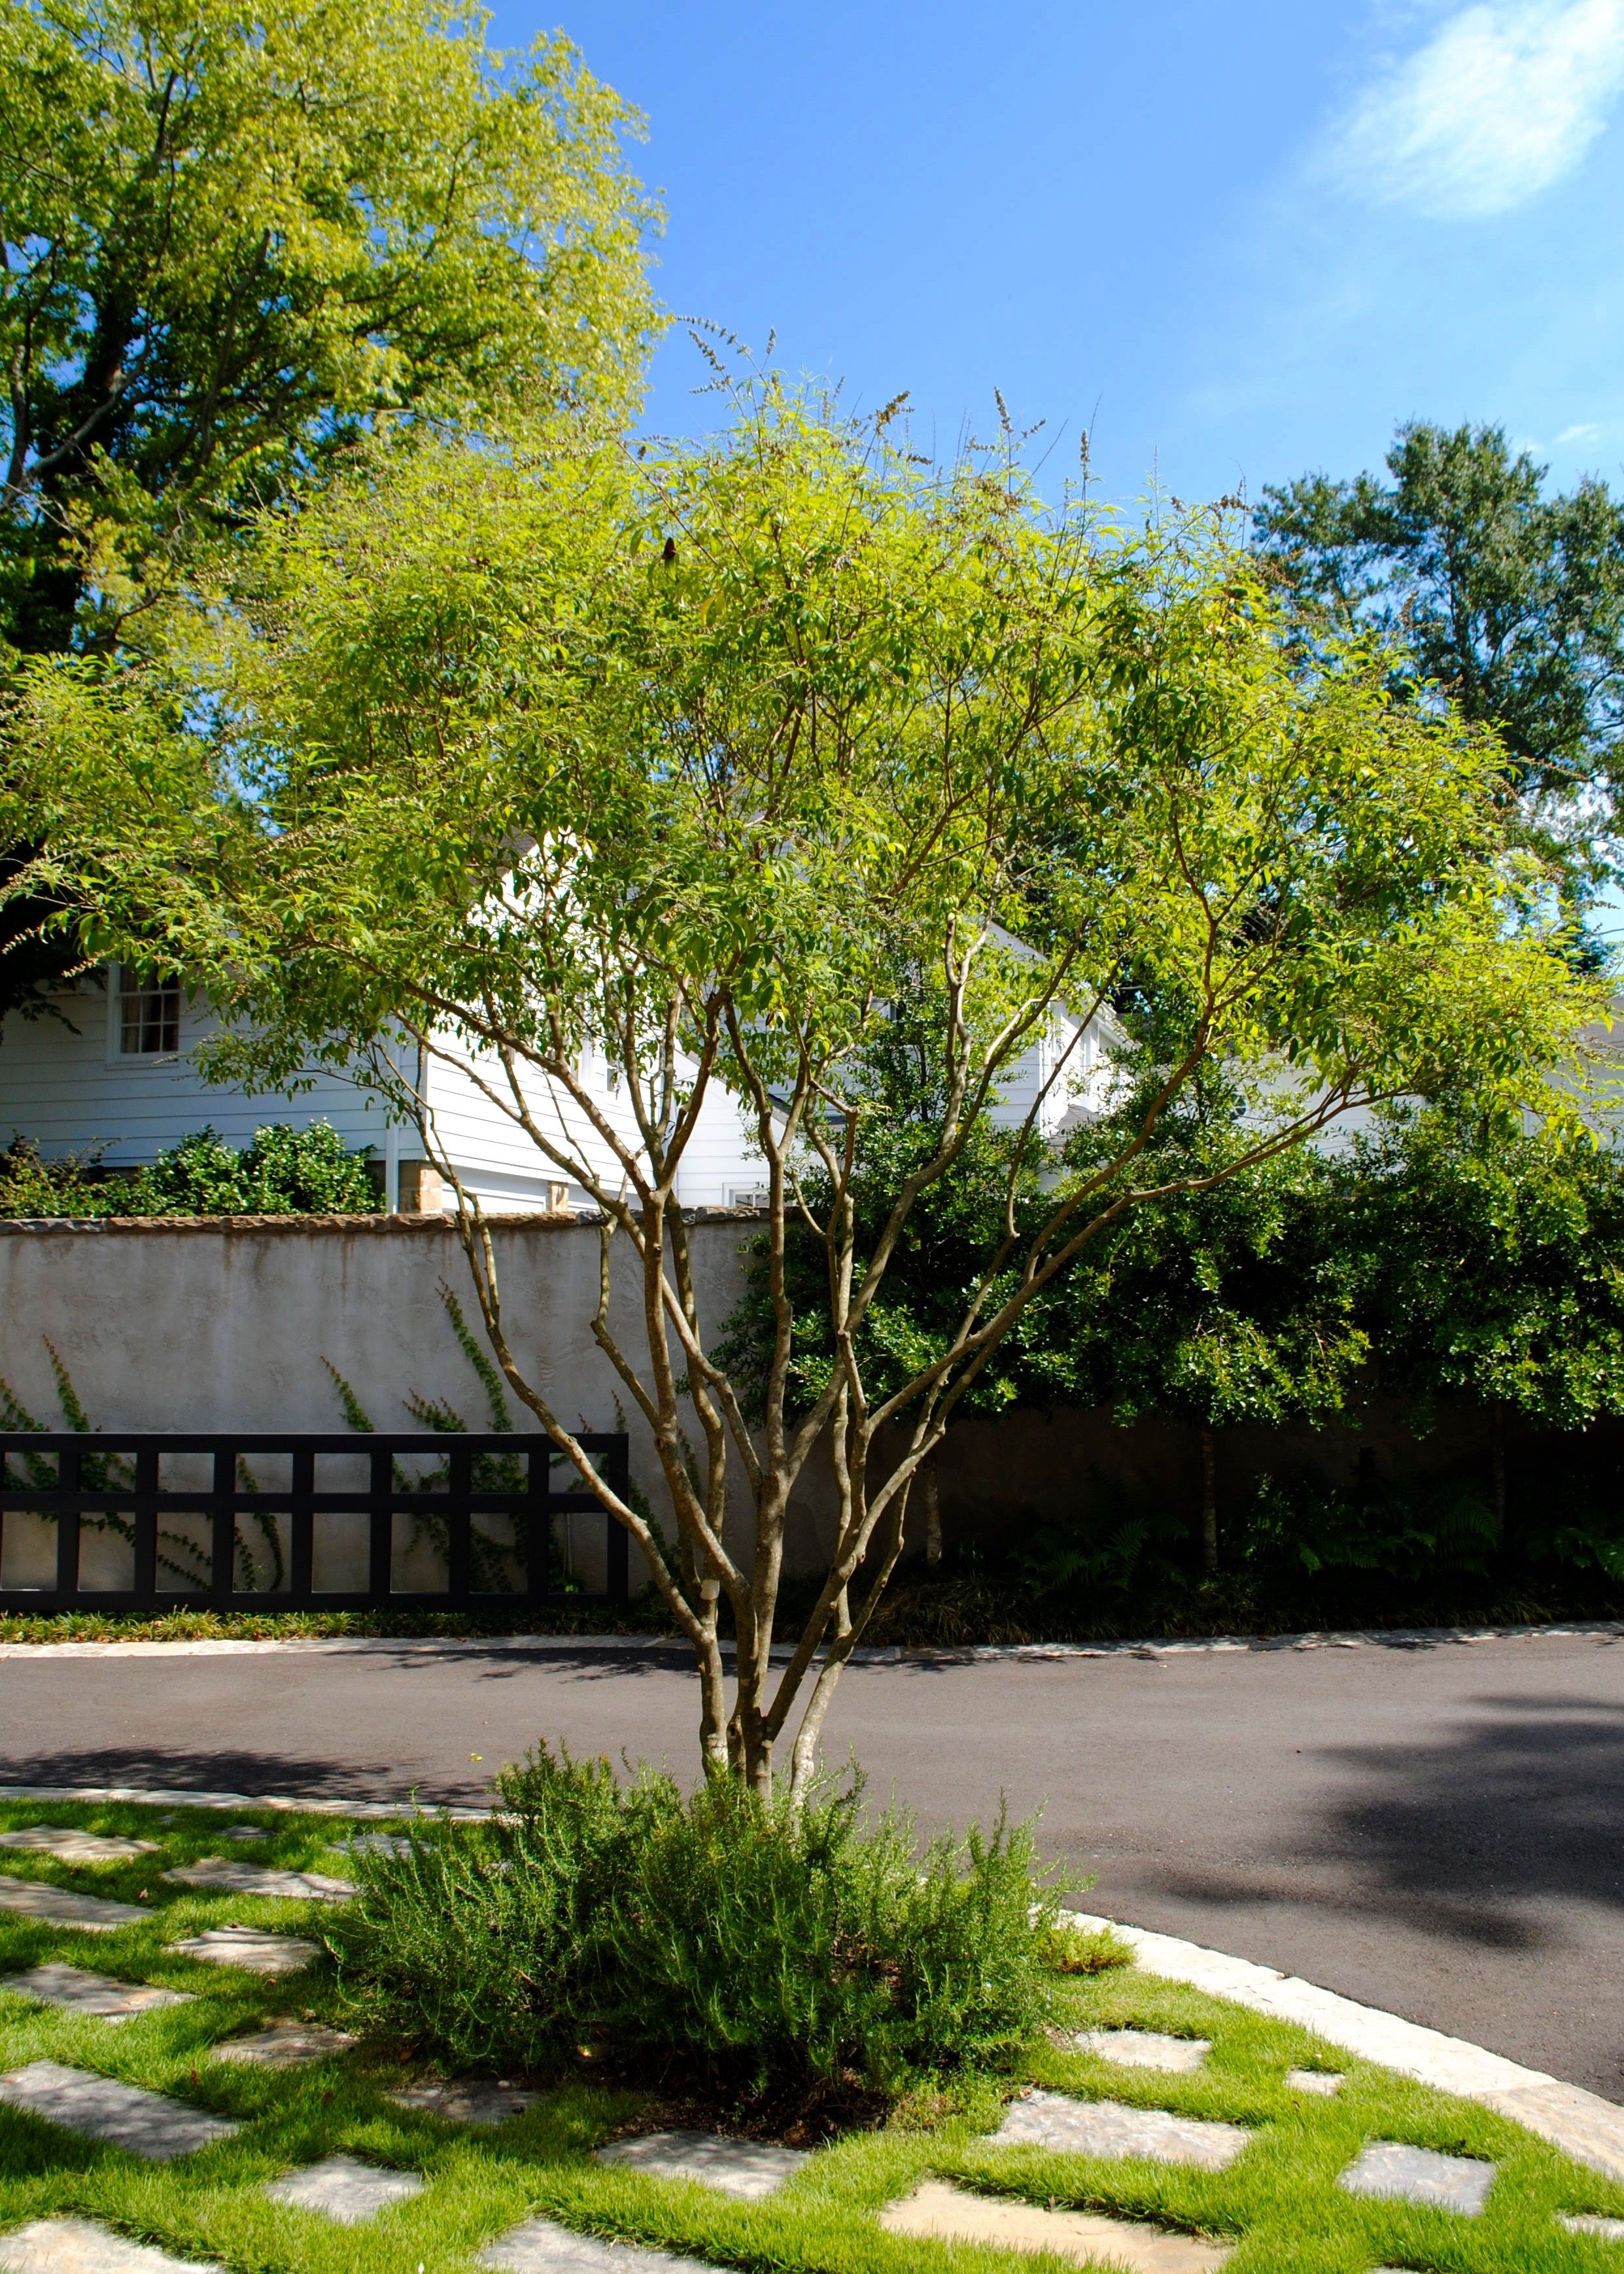 Looking For A Cool Ornamental Tree To Add To Your